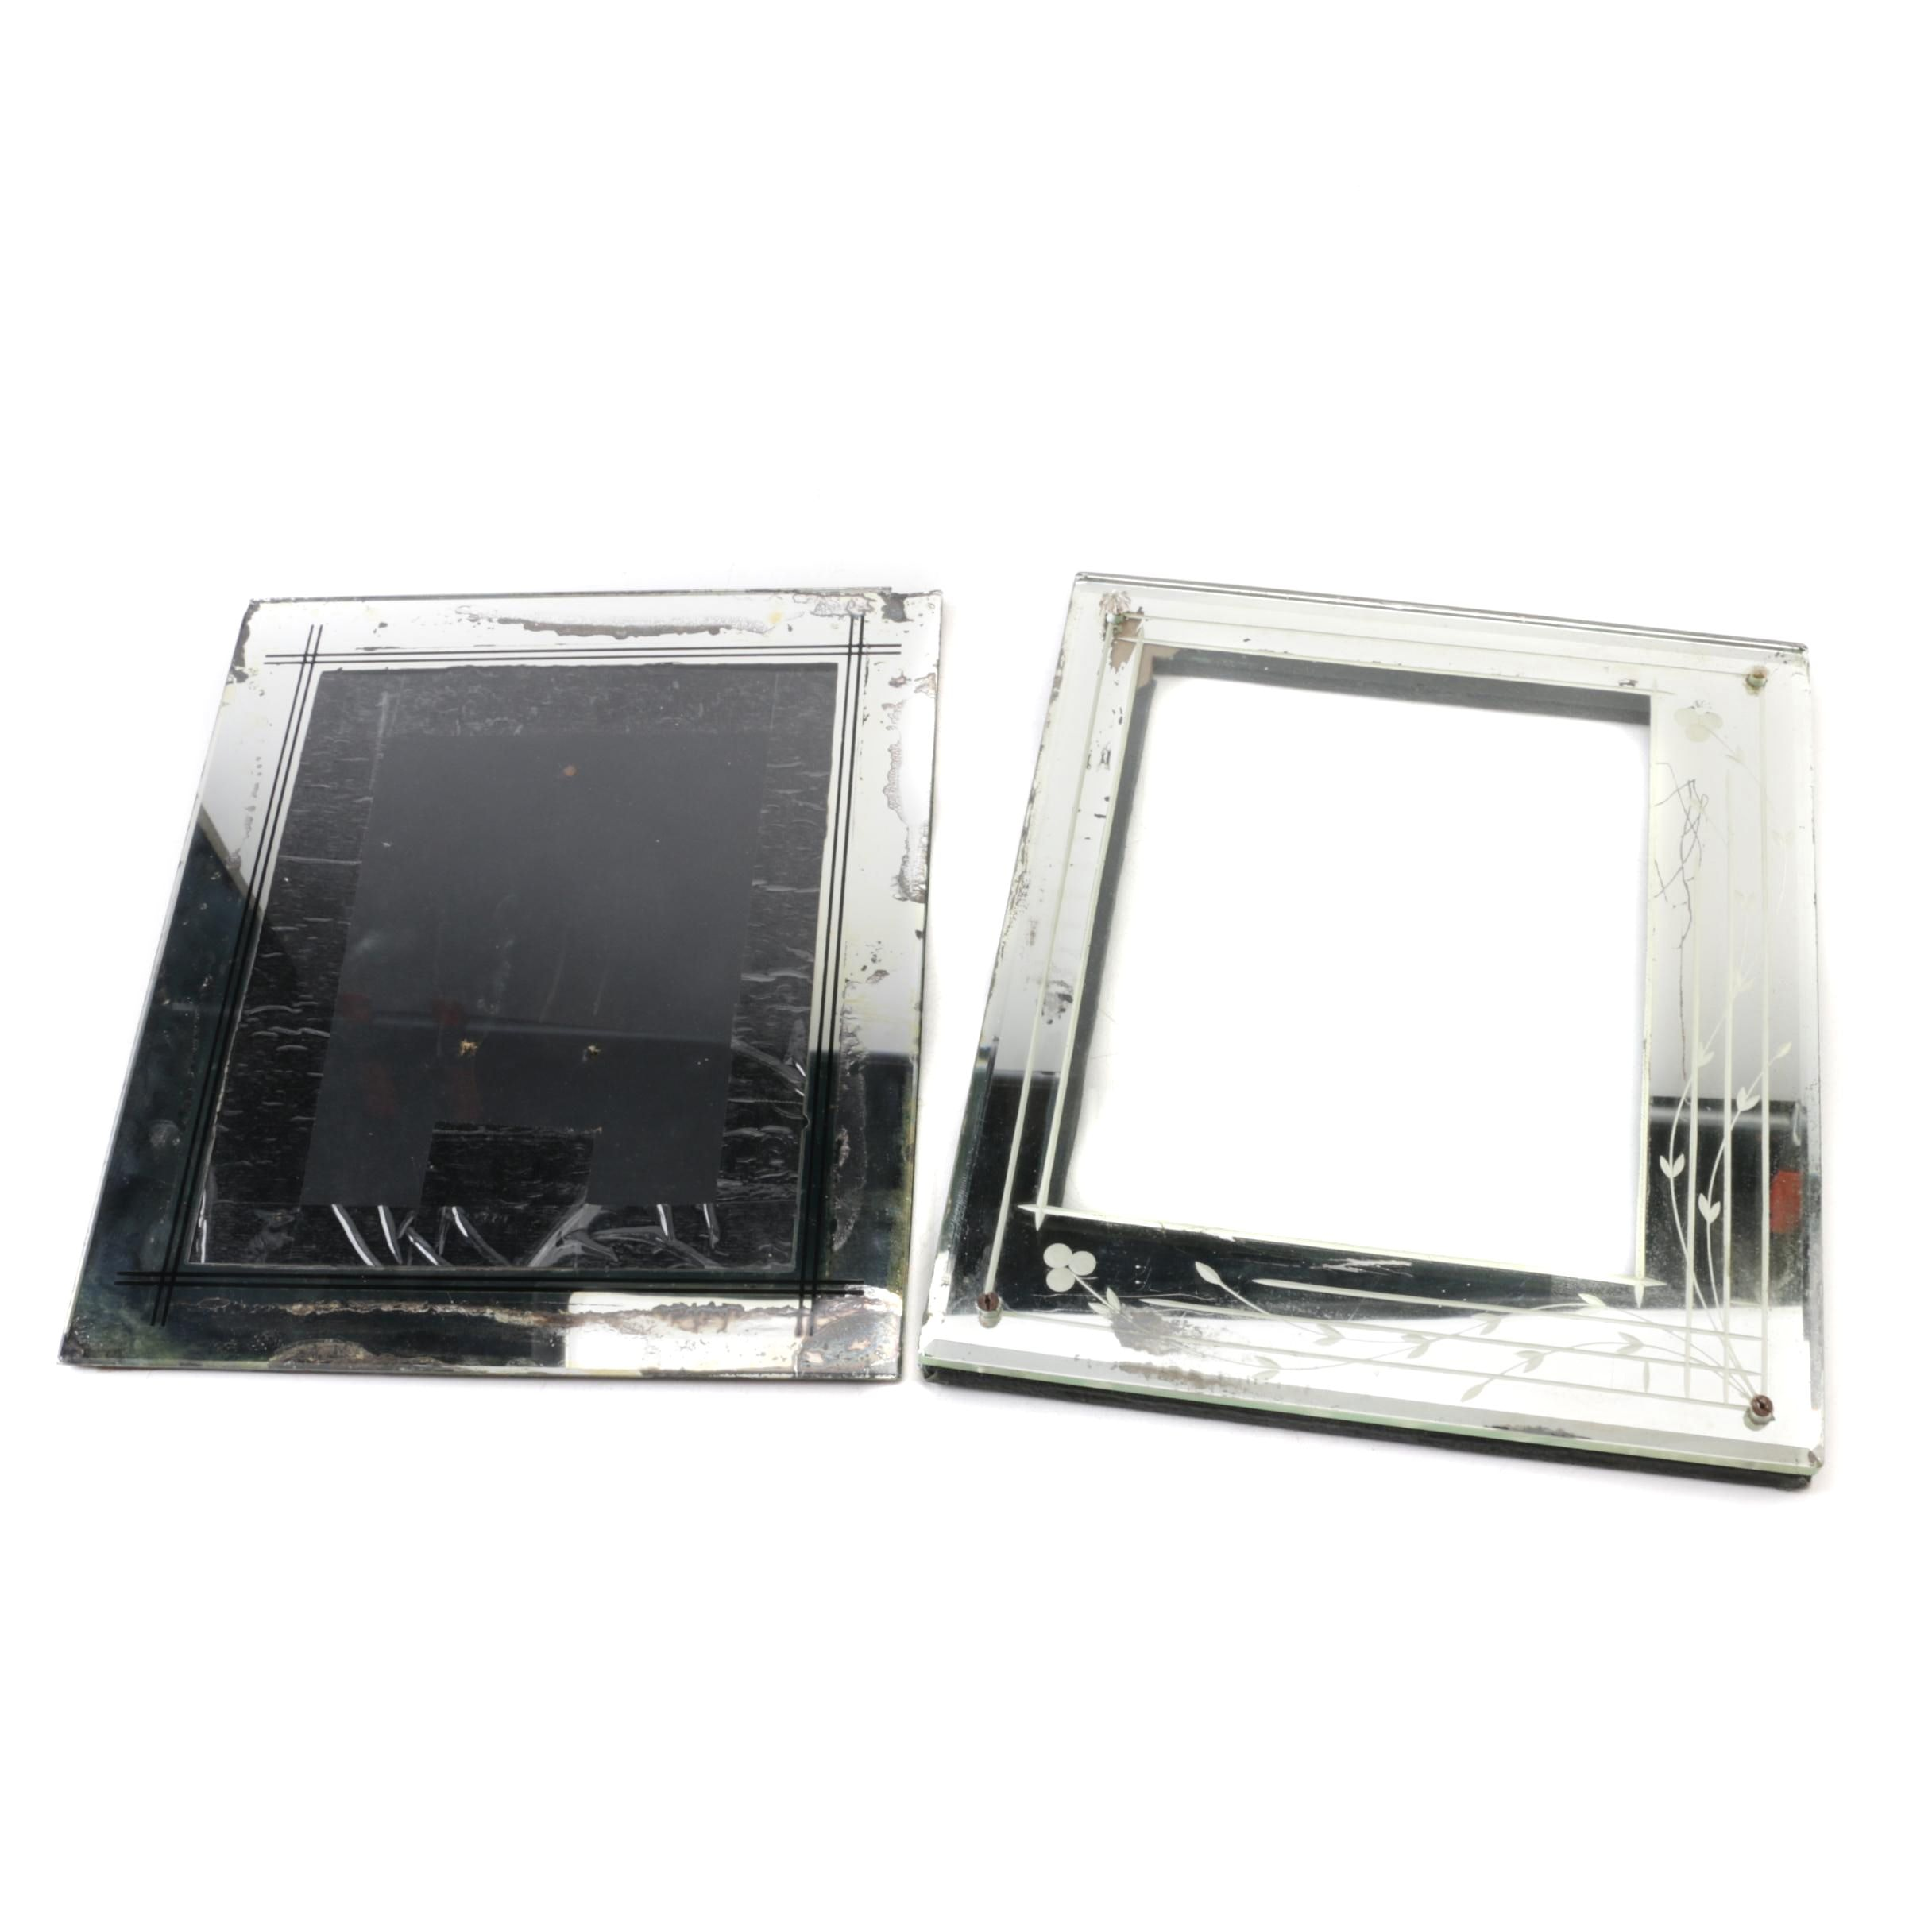 Vintage Mirrored Picture Frames